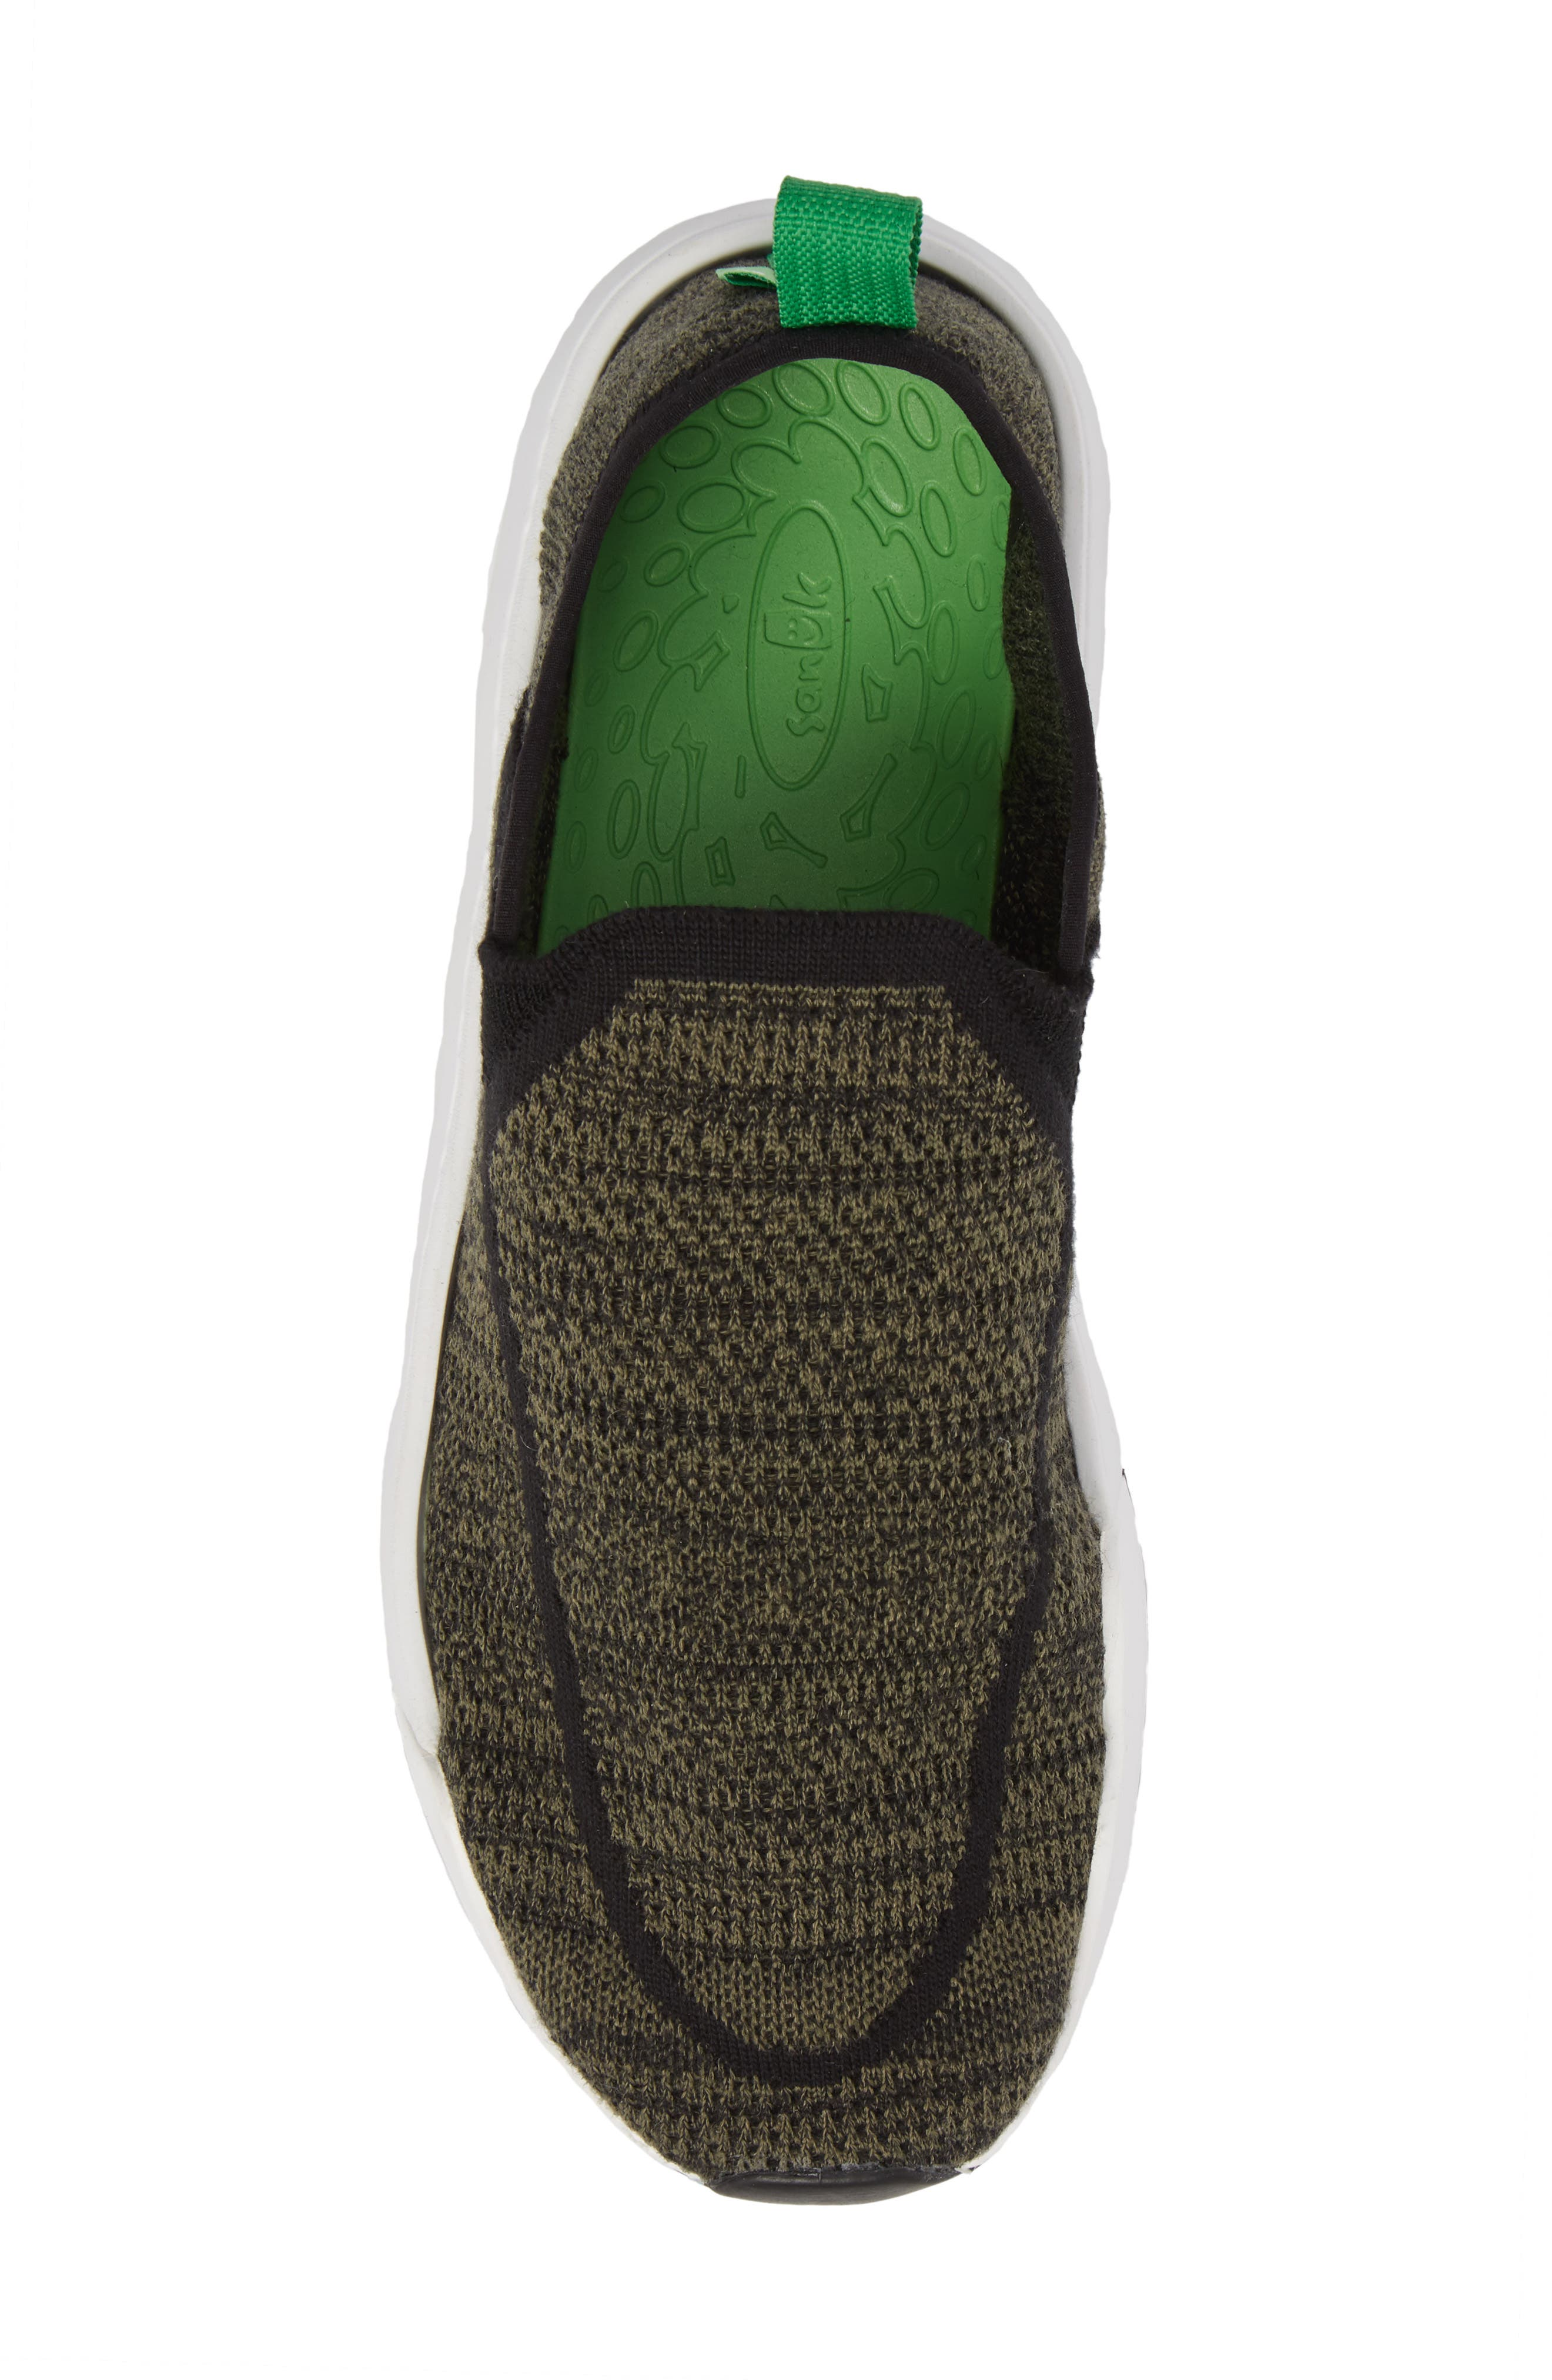 Chiba Quest Knit Slip-On Sneaker,                             Alternate thumbnail 5, color,                             OLIVE